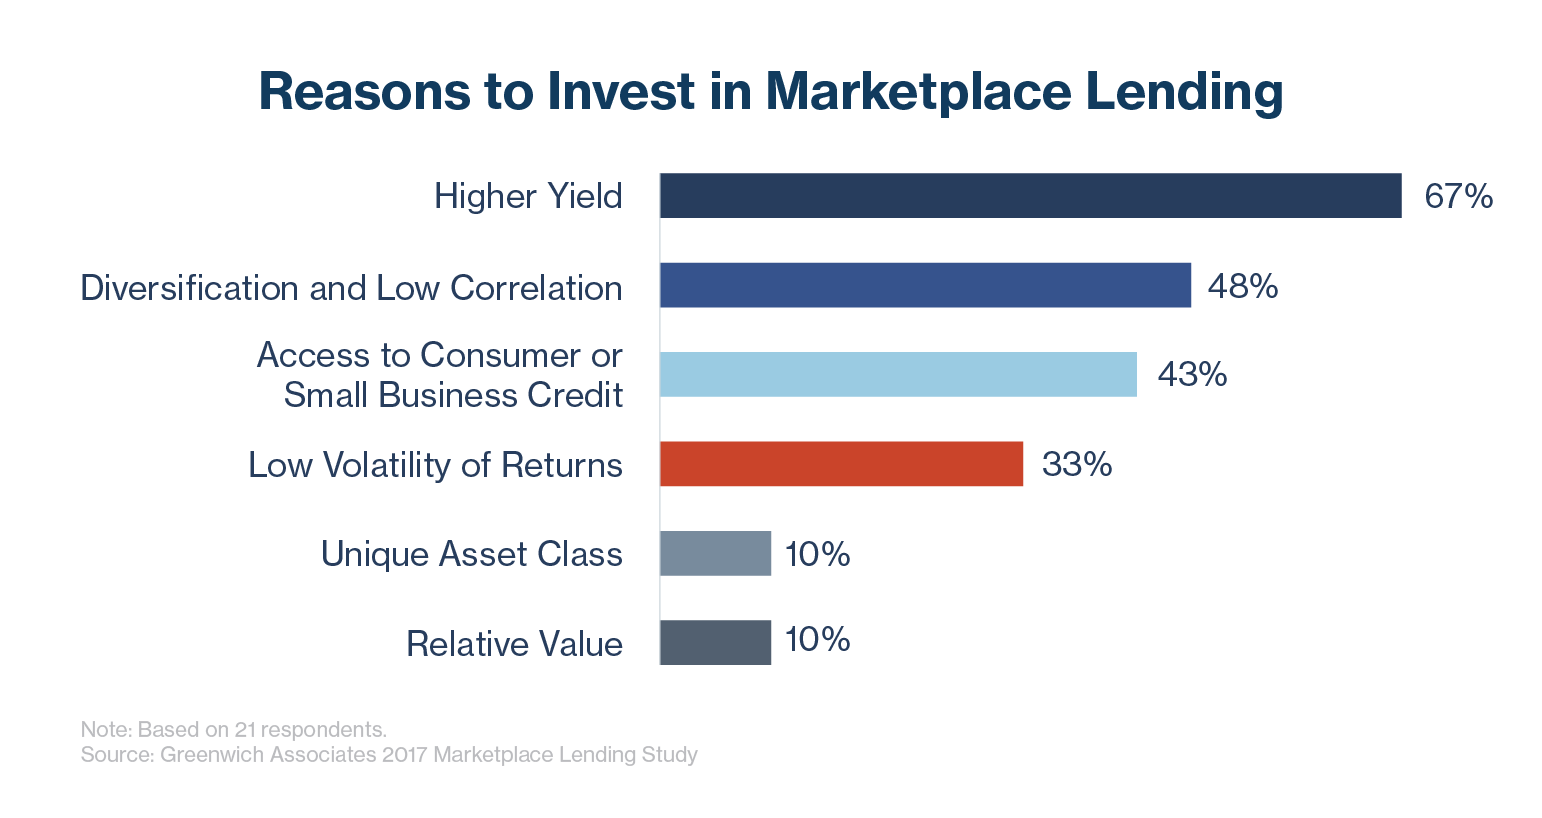 Reasons to Invest in Marketplace Loans